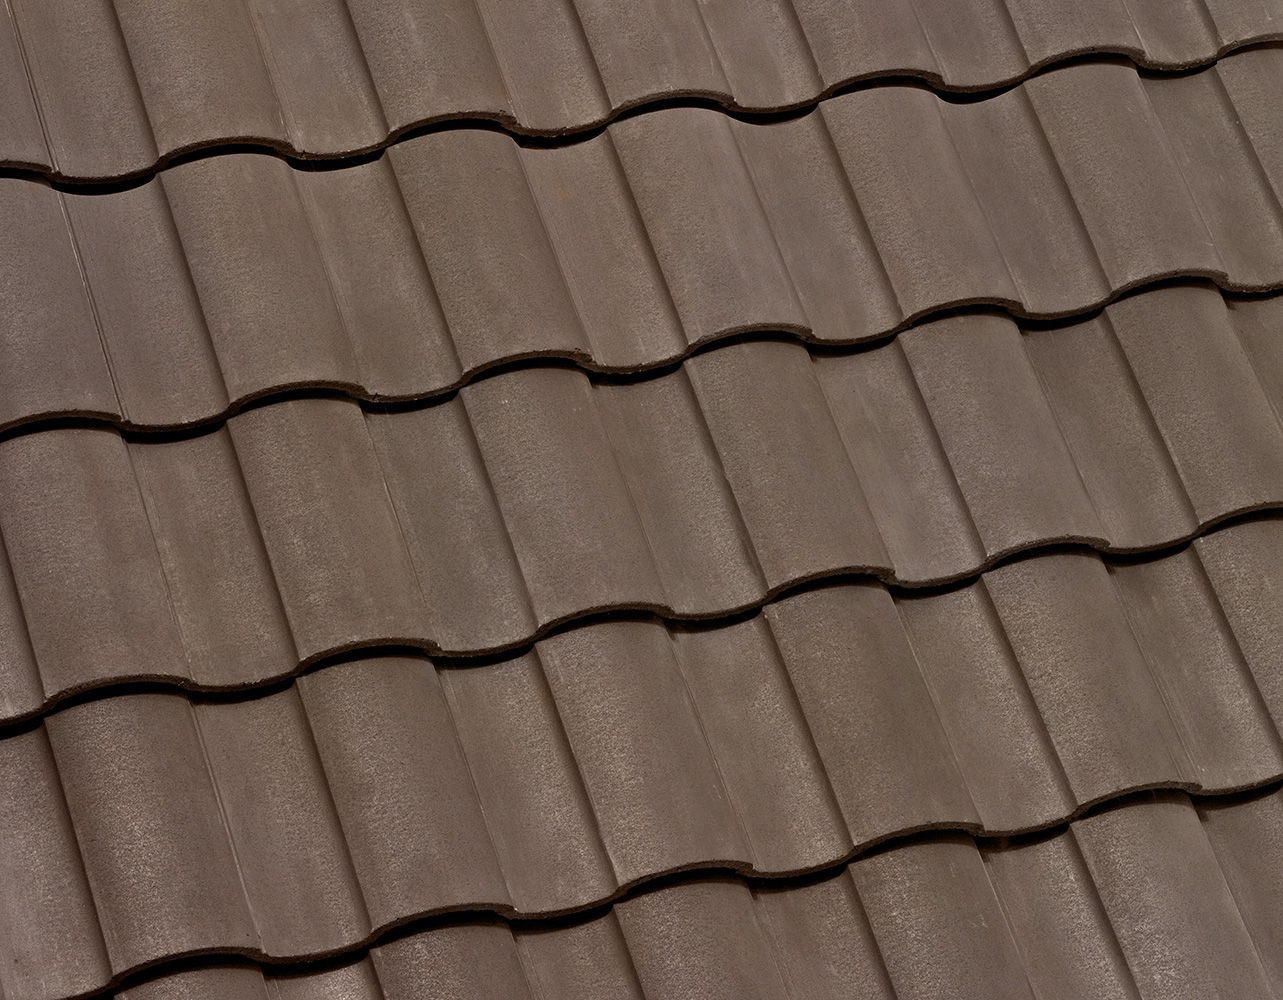 Eagle Roofing Products 3743 Cocoa Range Profile Capistrano Description Range Of Dark Brown Category Standard Selec Roofing Roof Tiles Concrete Roof Tiles